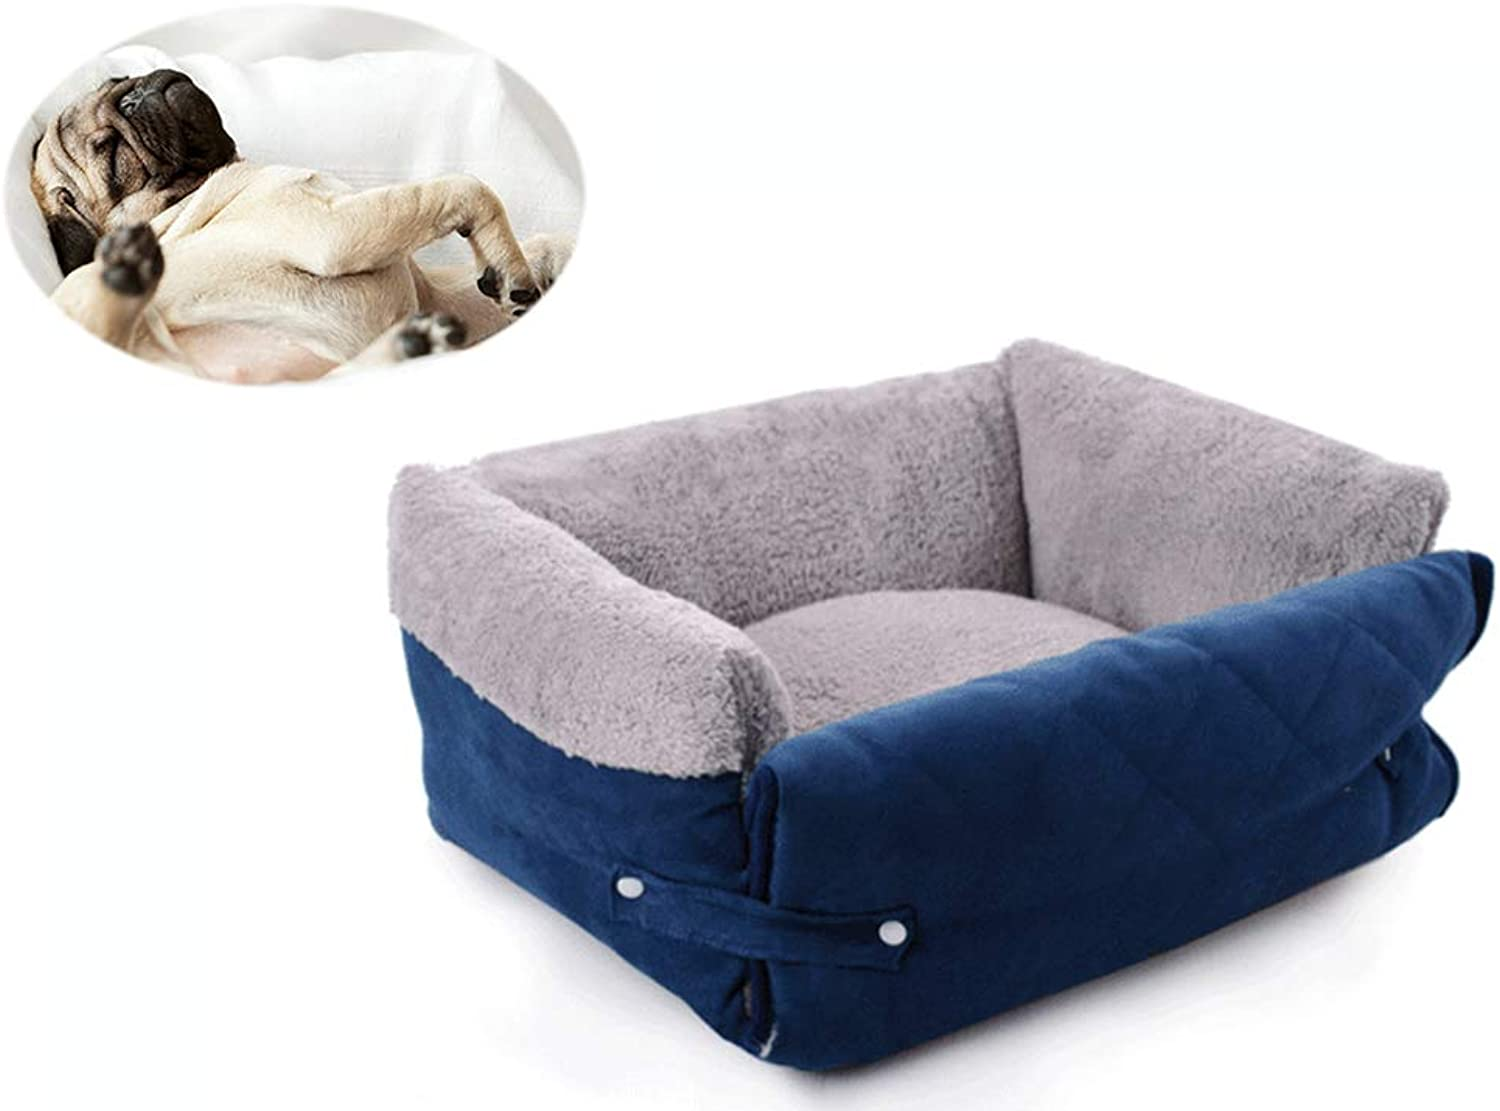 GKBMSP Dog bed Plush Soft Comfortable Round Dog Bed Removable Cleanable Multifunction Suede + PP cotton padding + nonslip oxford cloth Suitable for small and medium dogs Pet Bed